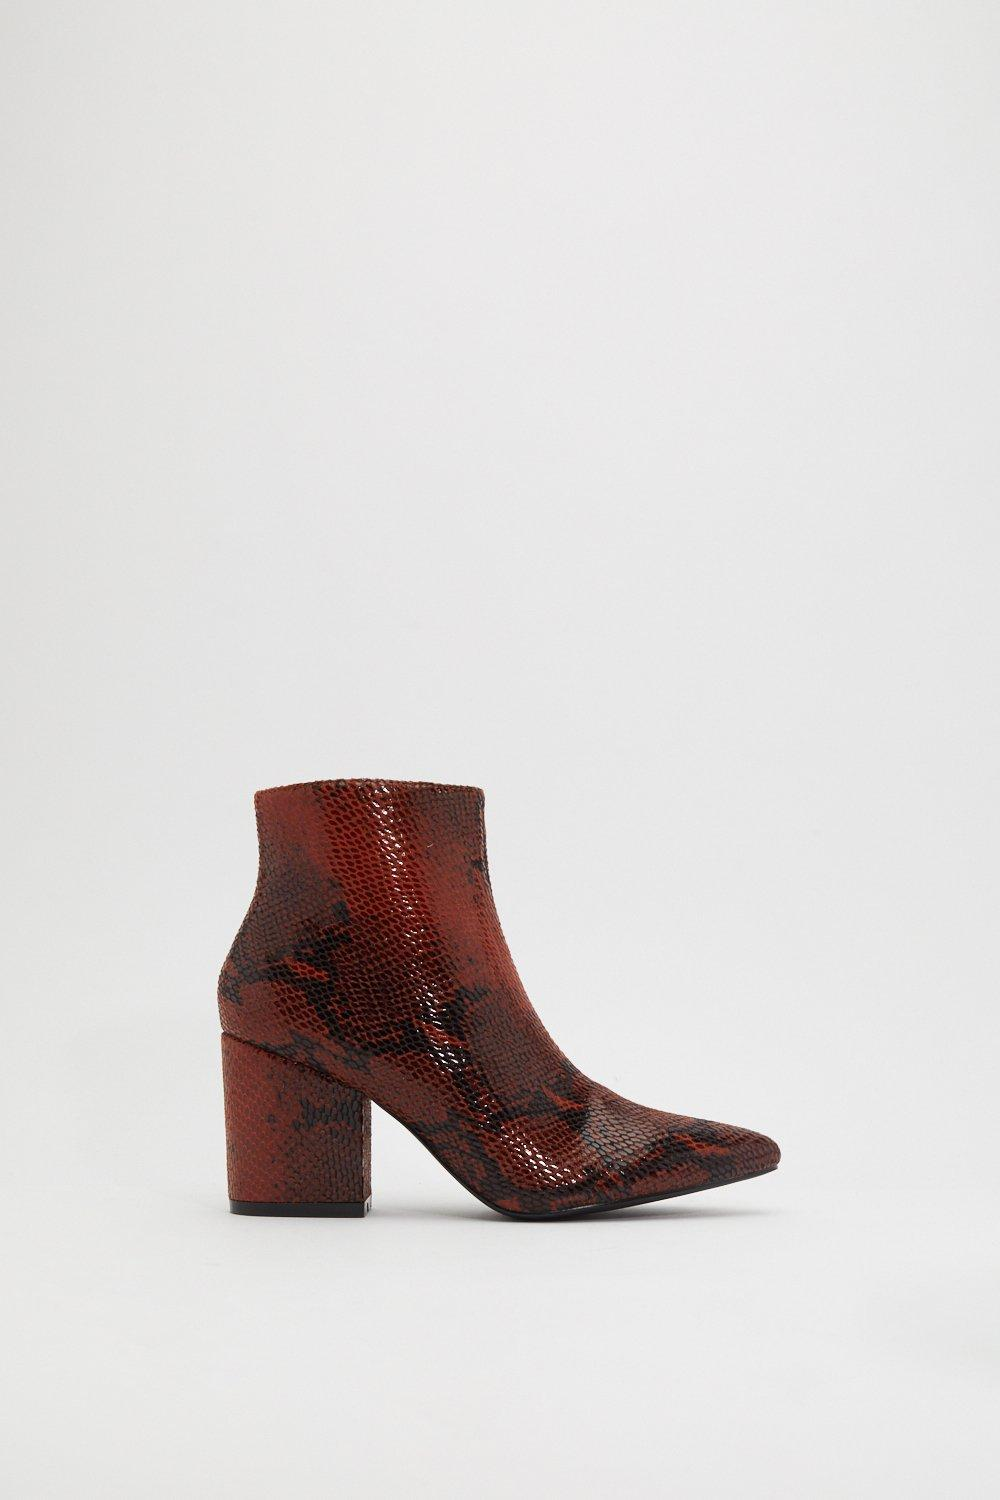 6d0f7d604051e Bite Me Snake Ankle Boots | Shop Clothes at Nasty Gal!